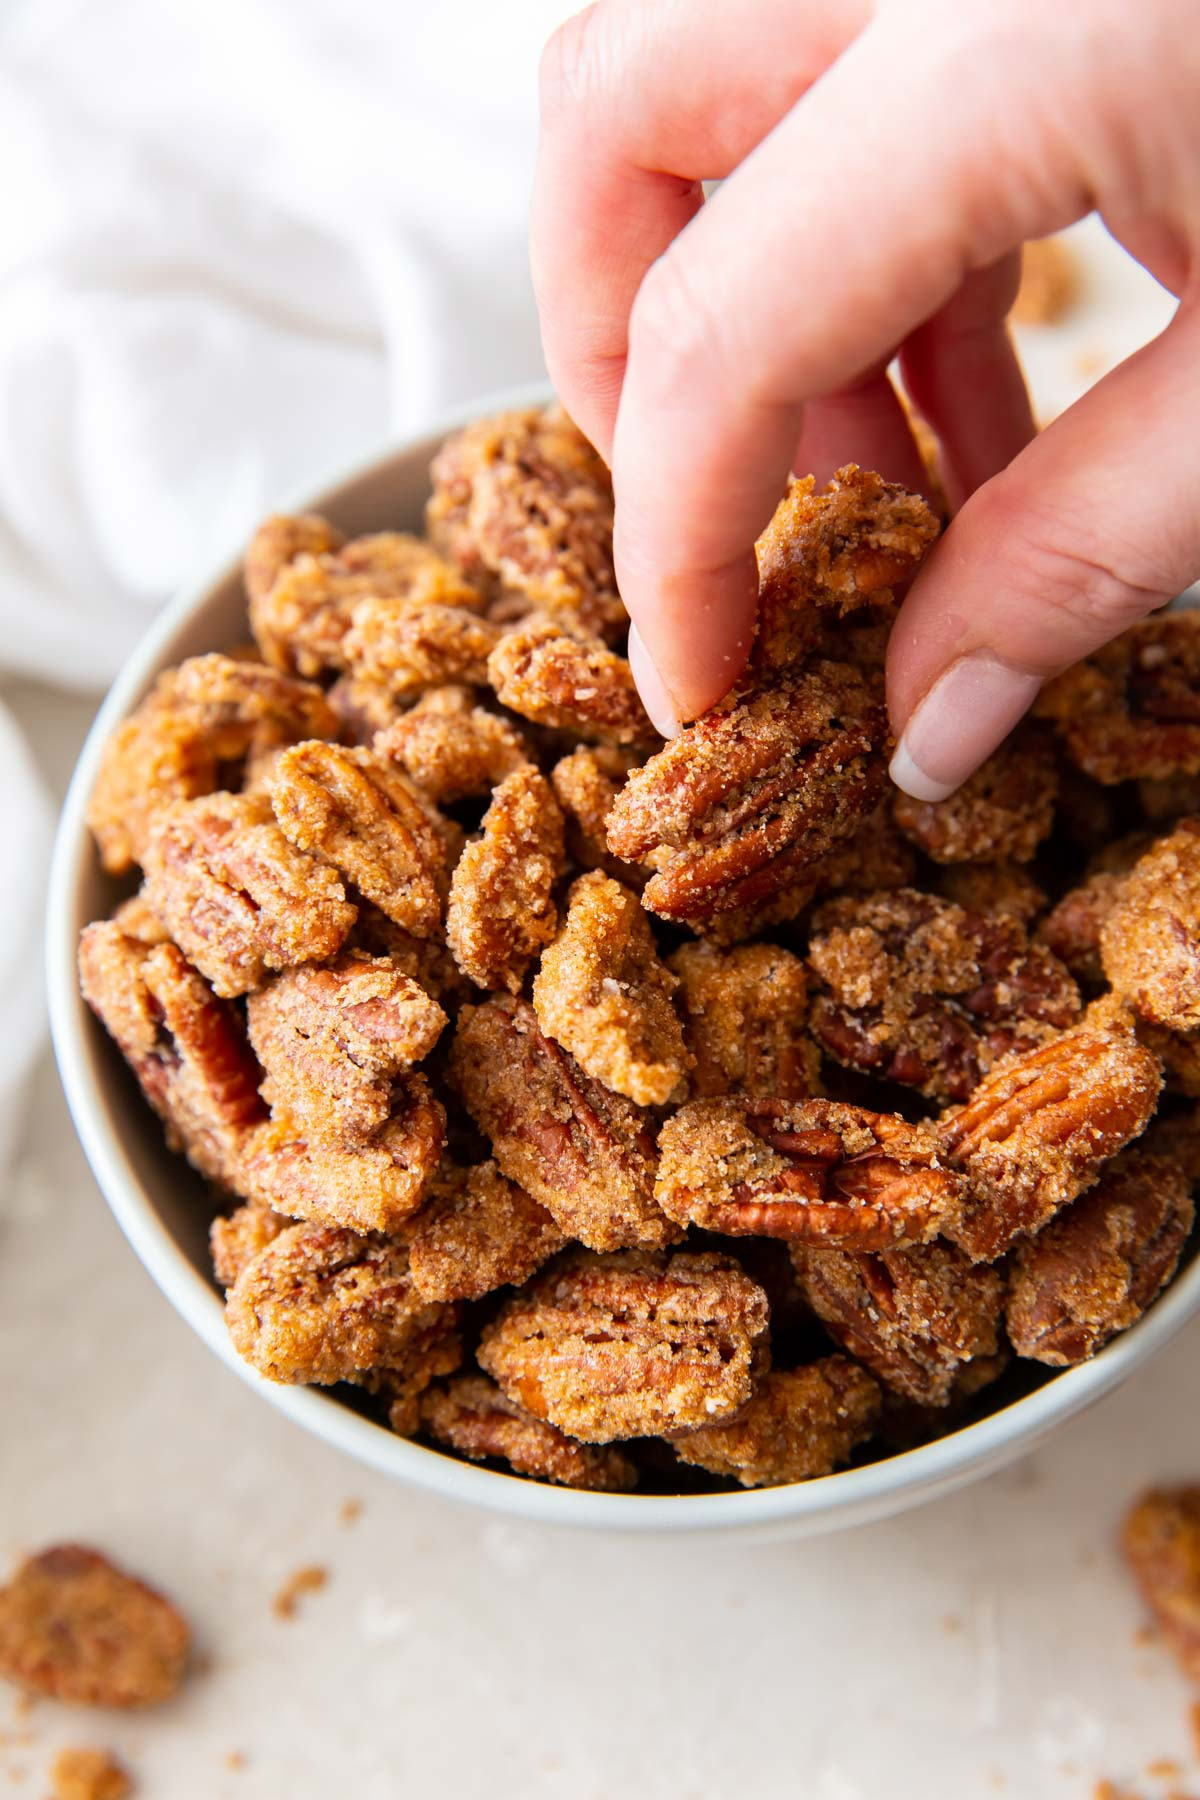 fingers grabbing a candied pecan out of a bowl